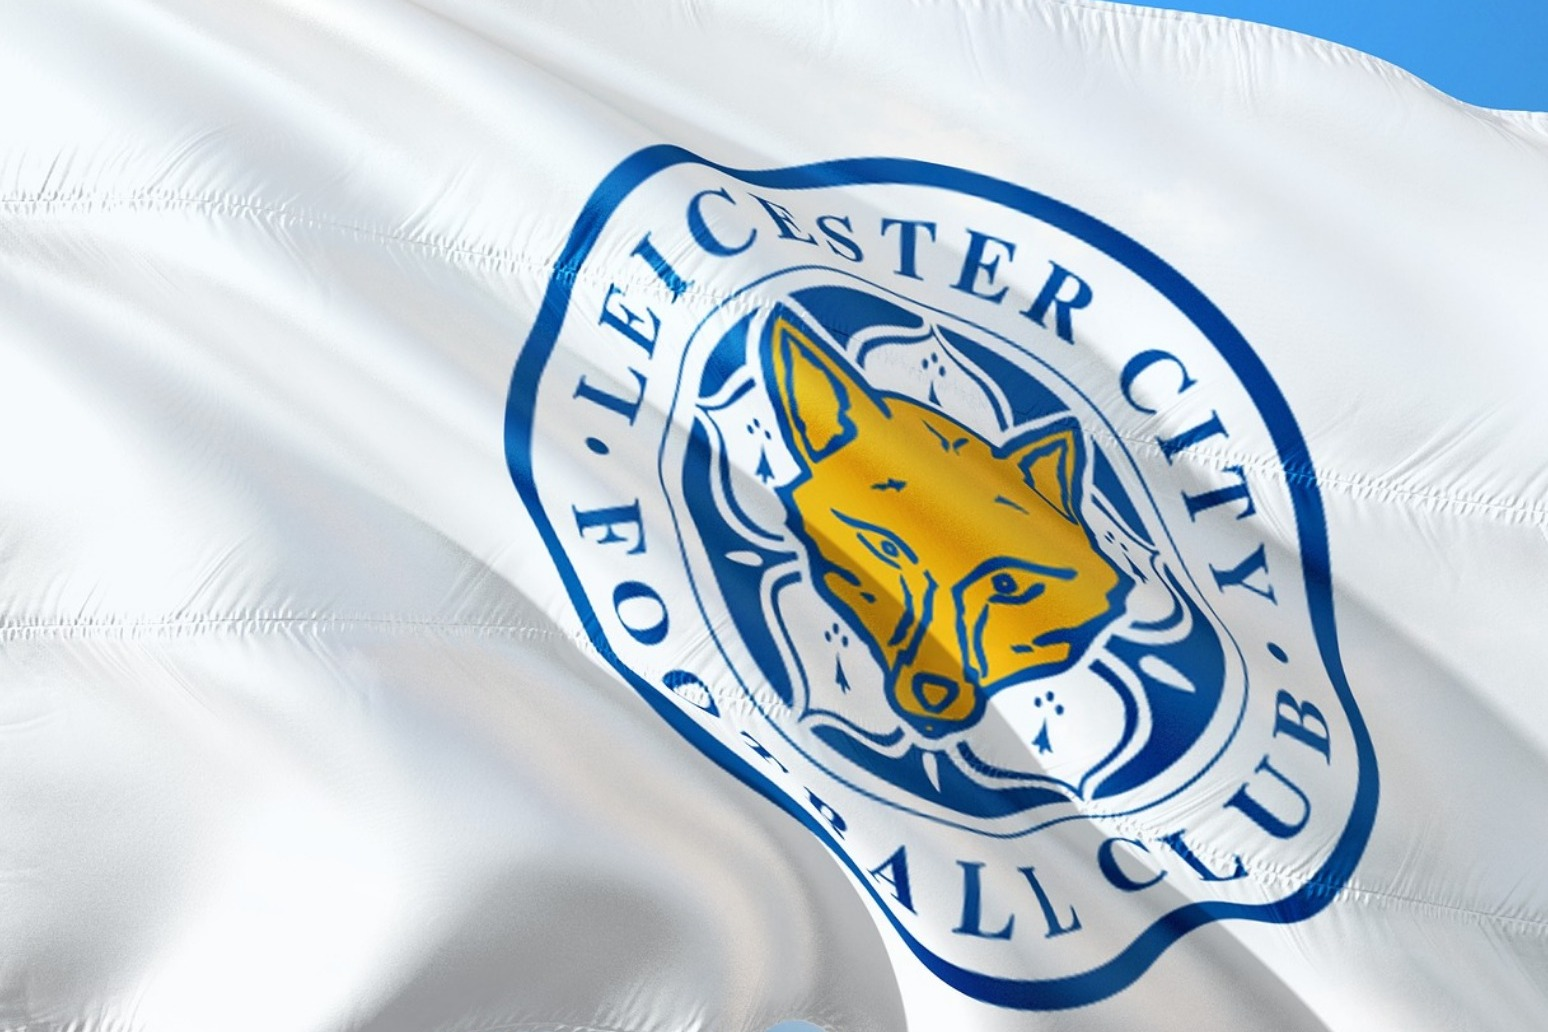 Leicester players to wear special kits in tribute to owner Vichai